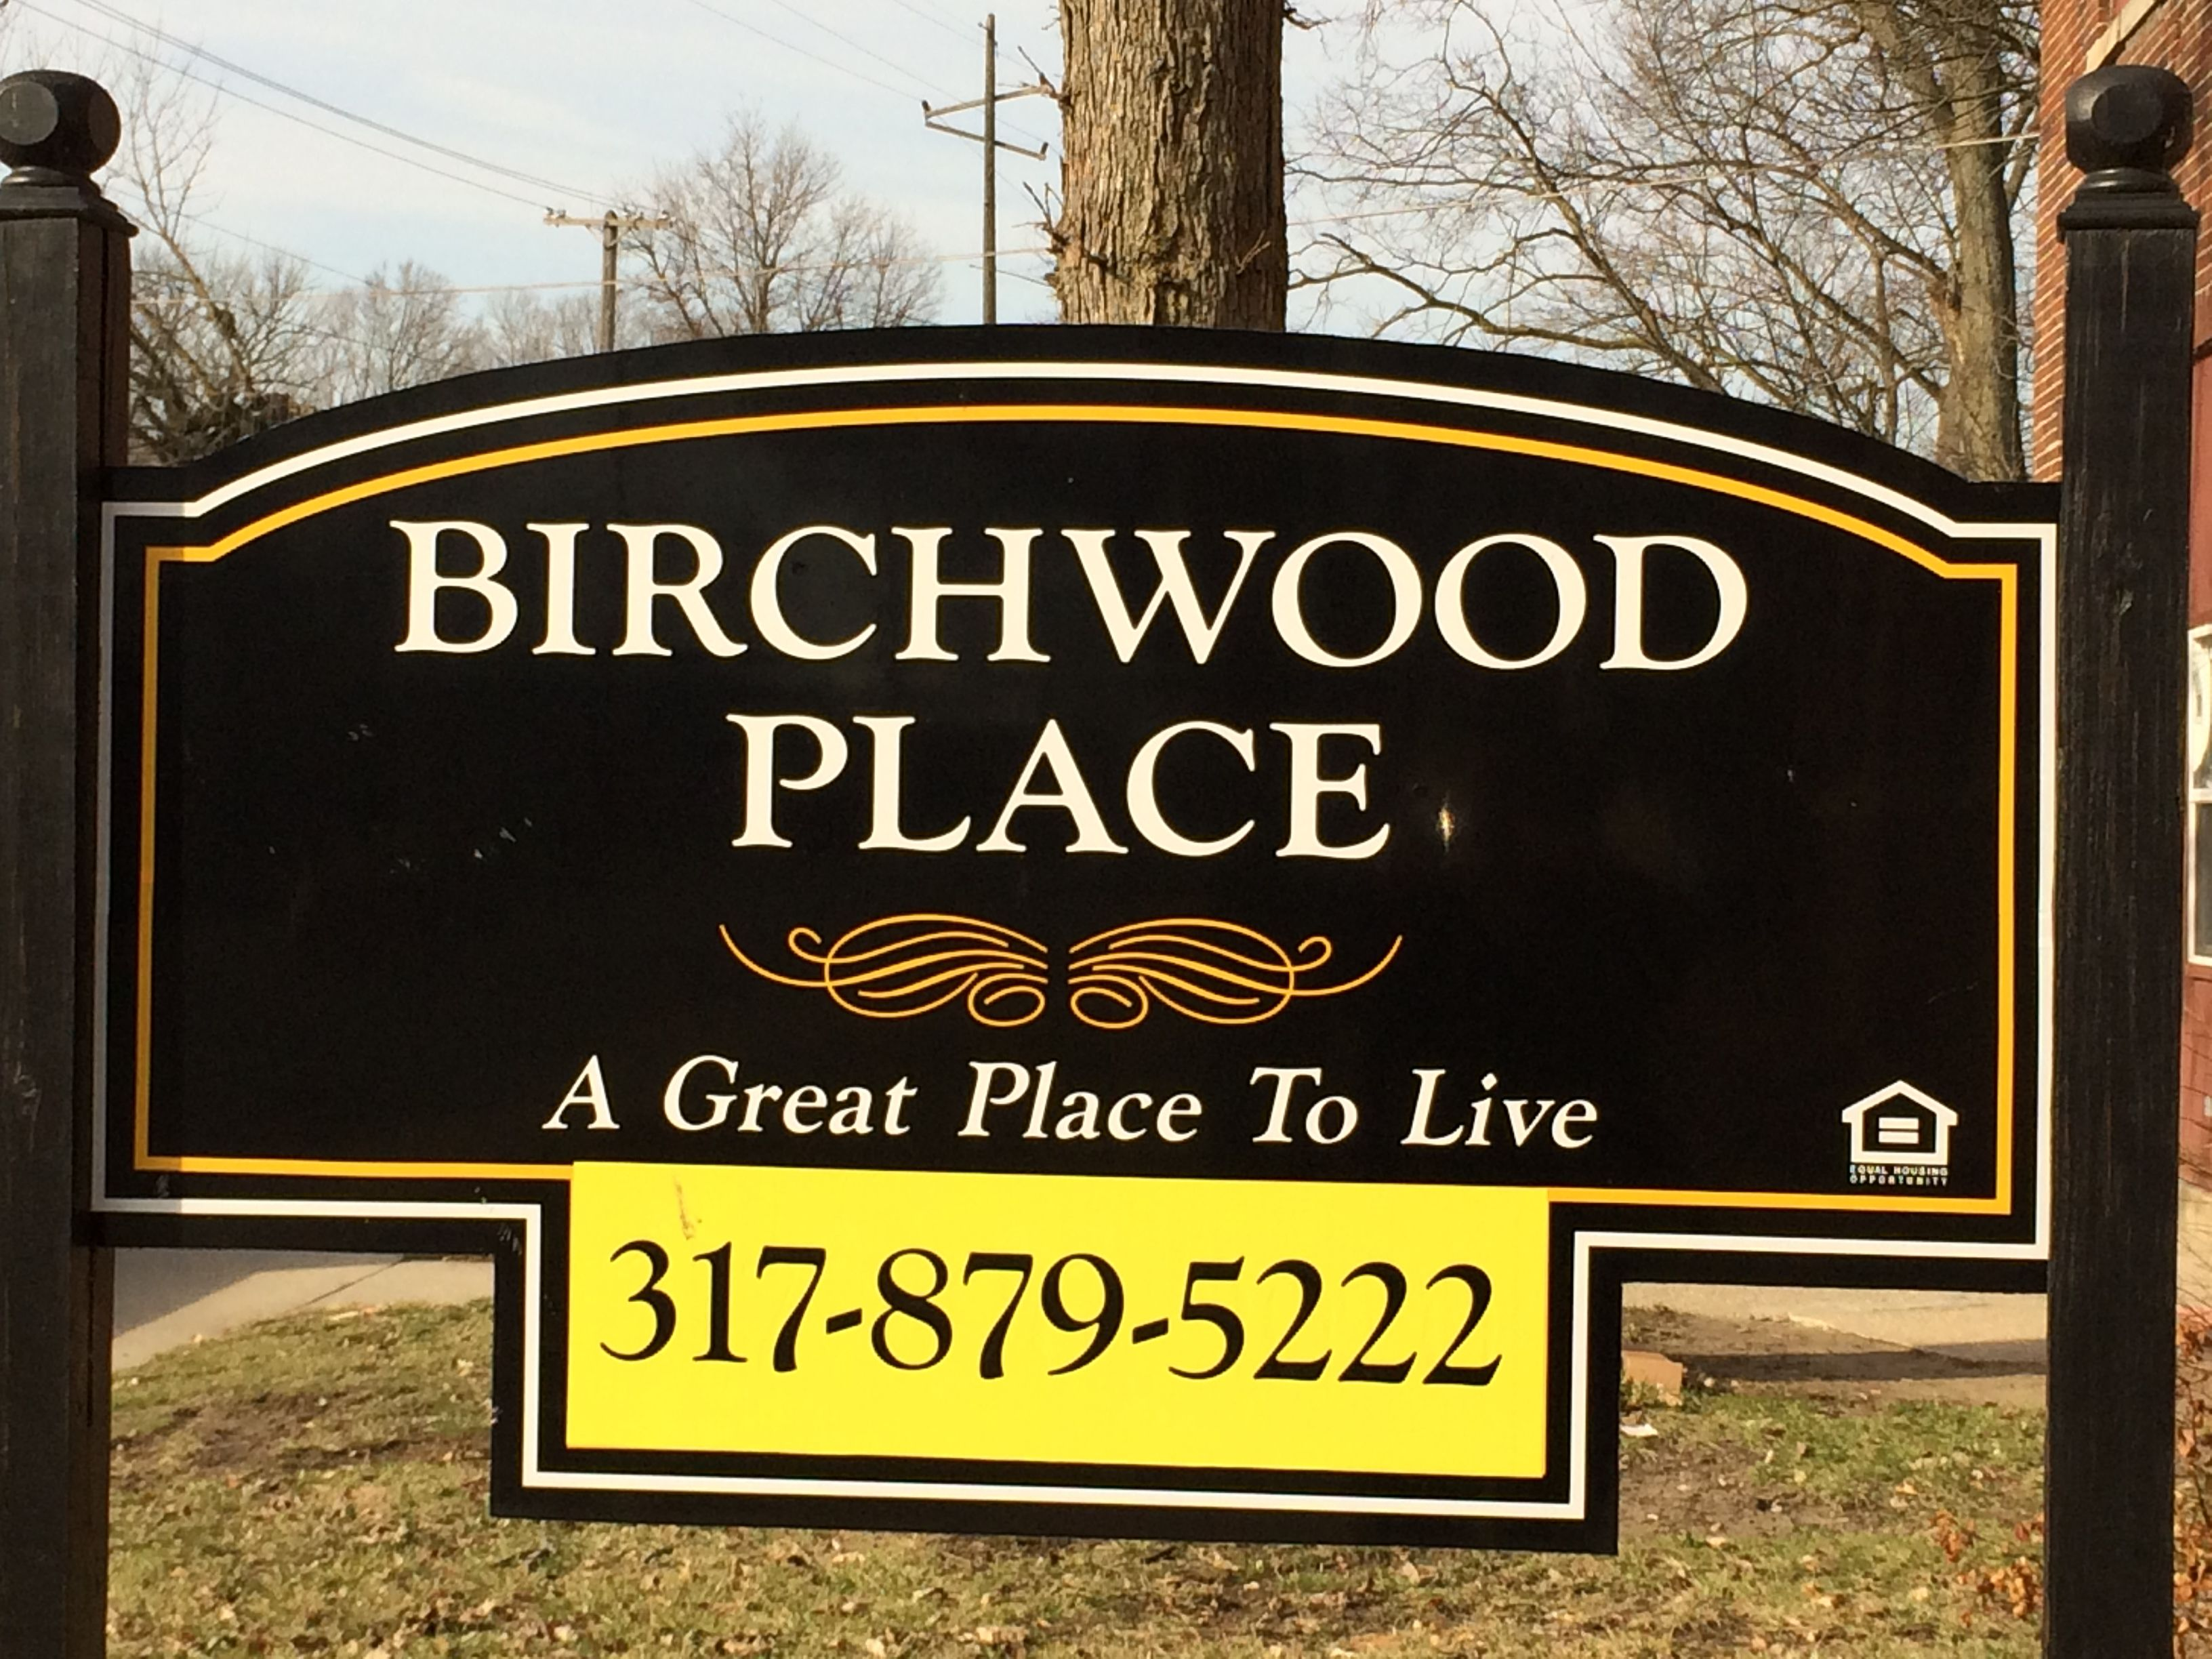 Birchwood Apartments Is An Apartment Building Located On The Corner Of Birchwood Avenue And Fairfield Avenue Just Birchwood Indiana State Apartment Building